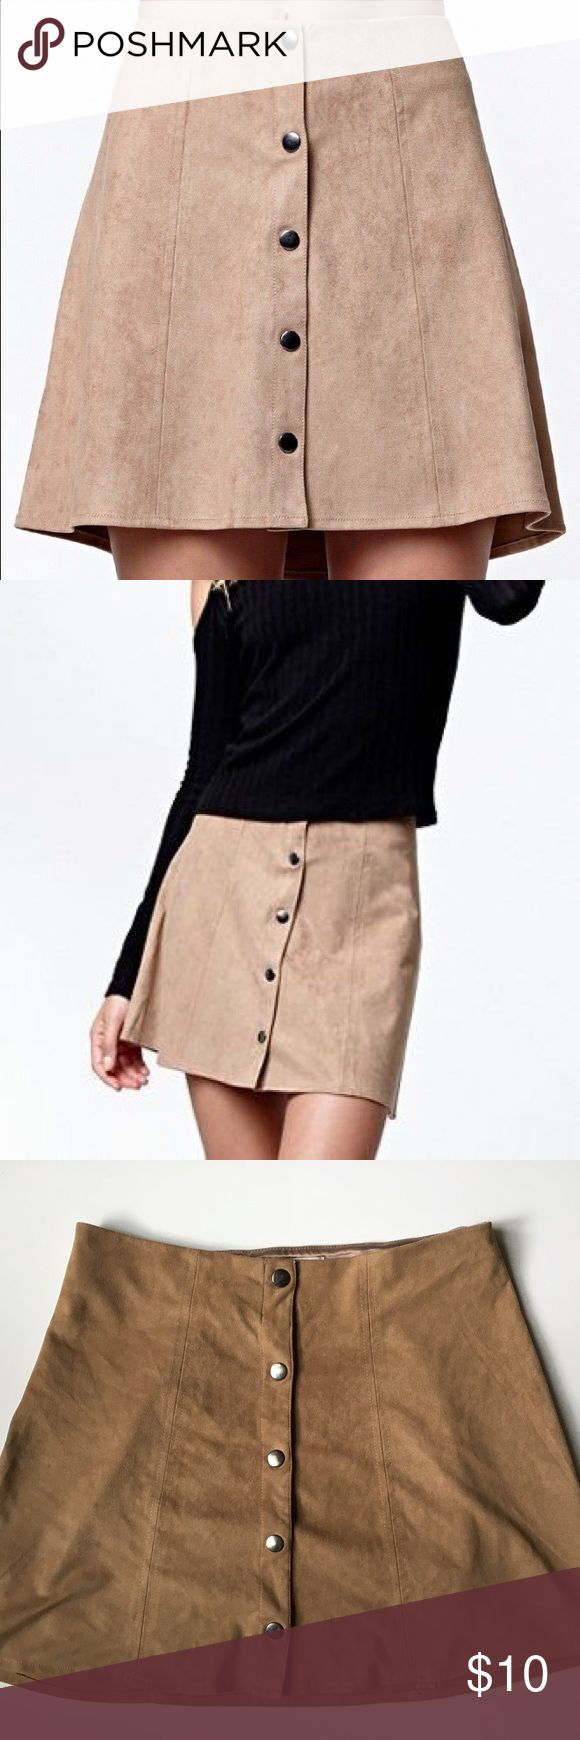 Kendall + Kylie Suede Button Skirt Cute skirt by Kendall + Kylie, perfect for spring/summer and for upcoming music festivals!! Not sure what the size is, it measures 13in across the waist and about 14in in length. There's a lot of piling on the inside back of the skirt, this does not affect the wear however! Price reflects the inside damage. Feel free to ask questions and make offers!!  Kendall & Kylie Skirts Mini